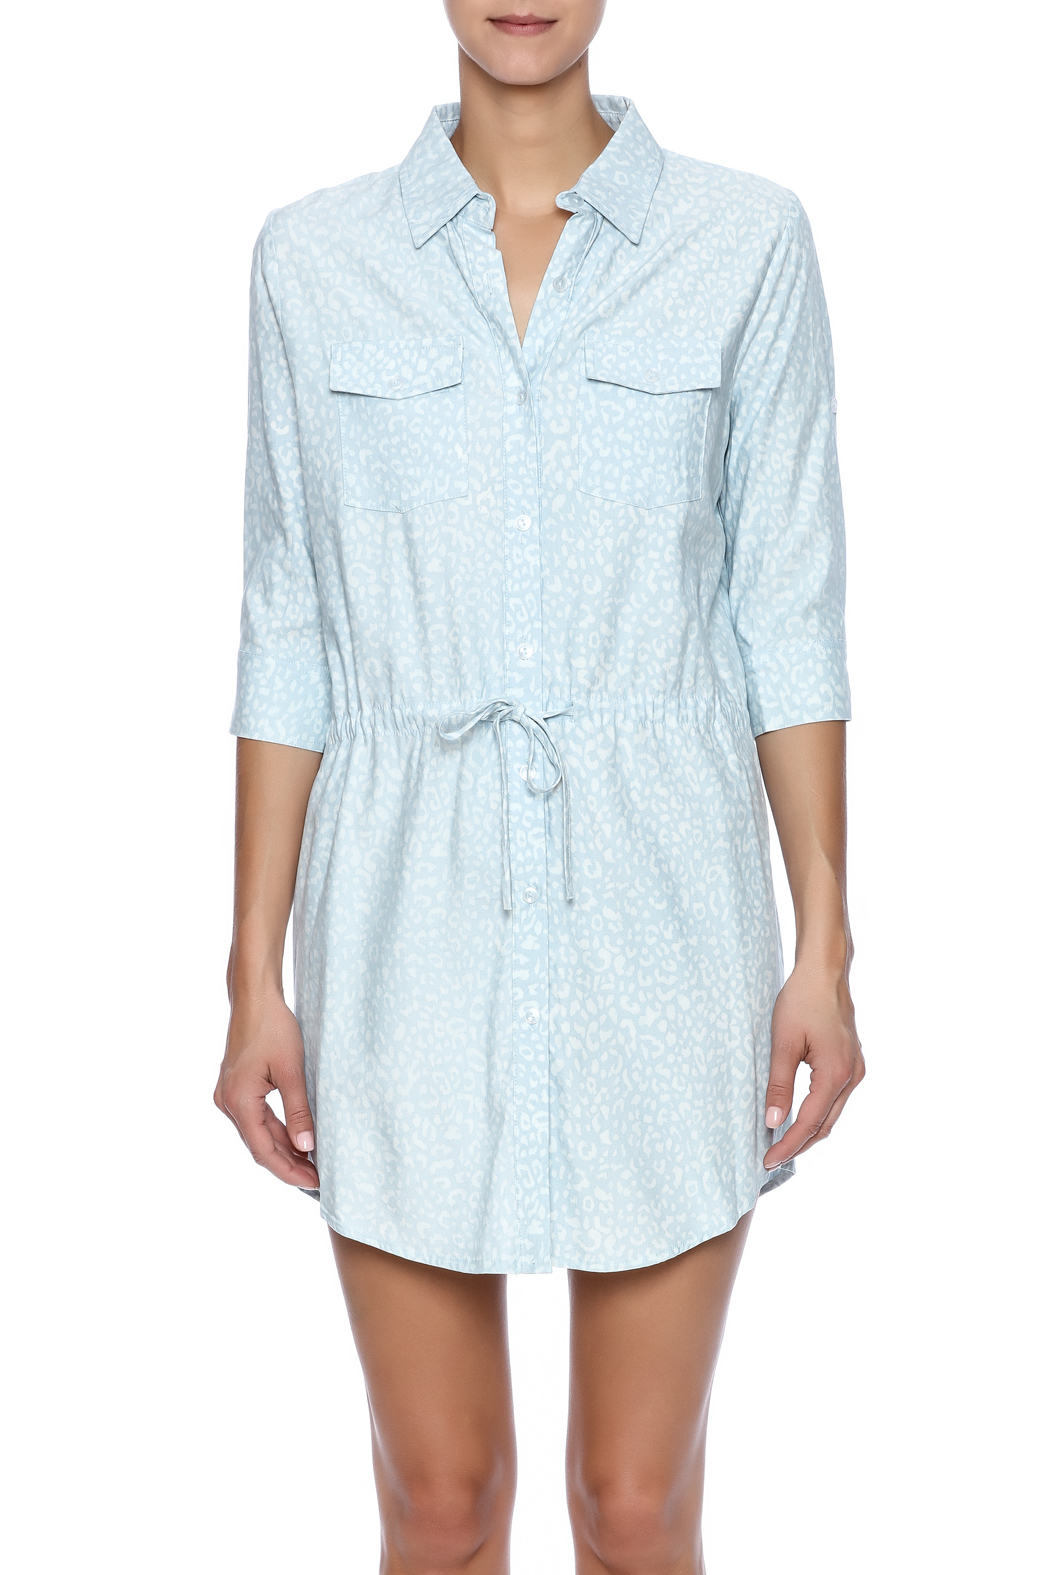 Buddy Love Orlando Shirt Dress - Side Cropped Image